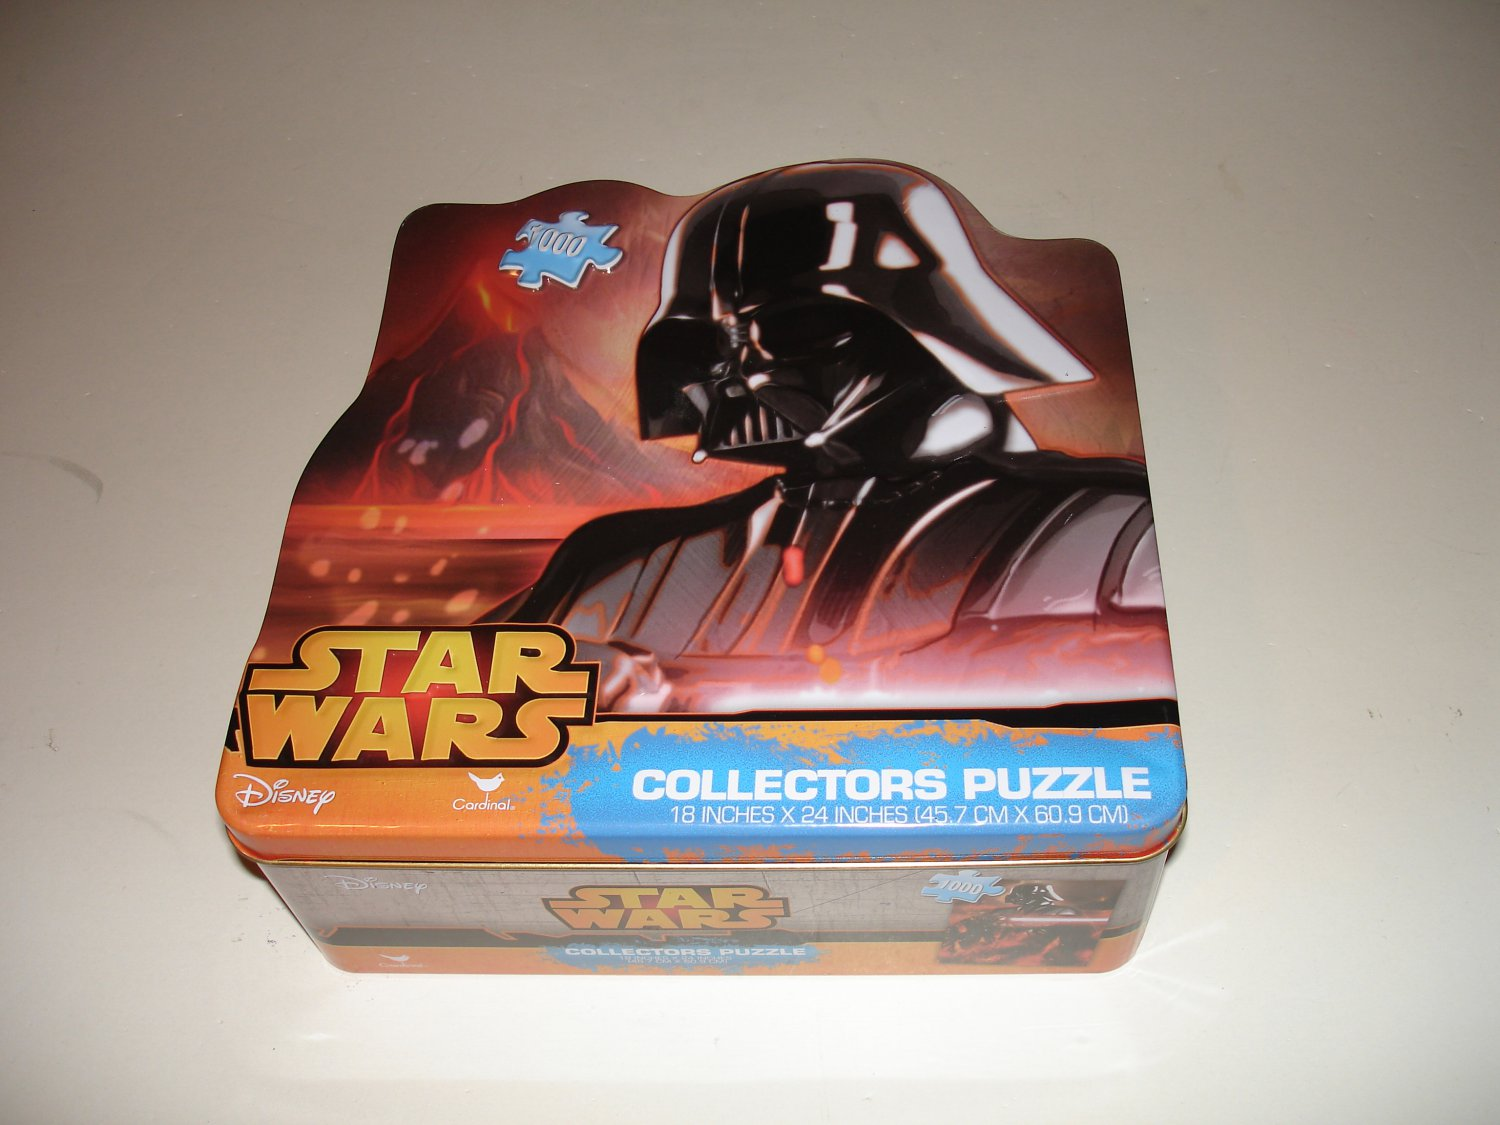 Star Wars Collectors Puzzle: Darth Vader- 1000 Pieces/Tin (18708) -E III -Disney